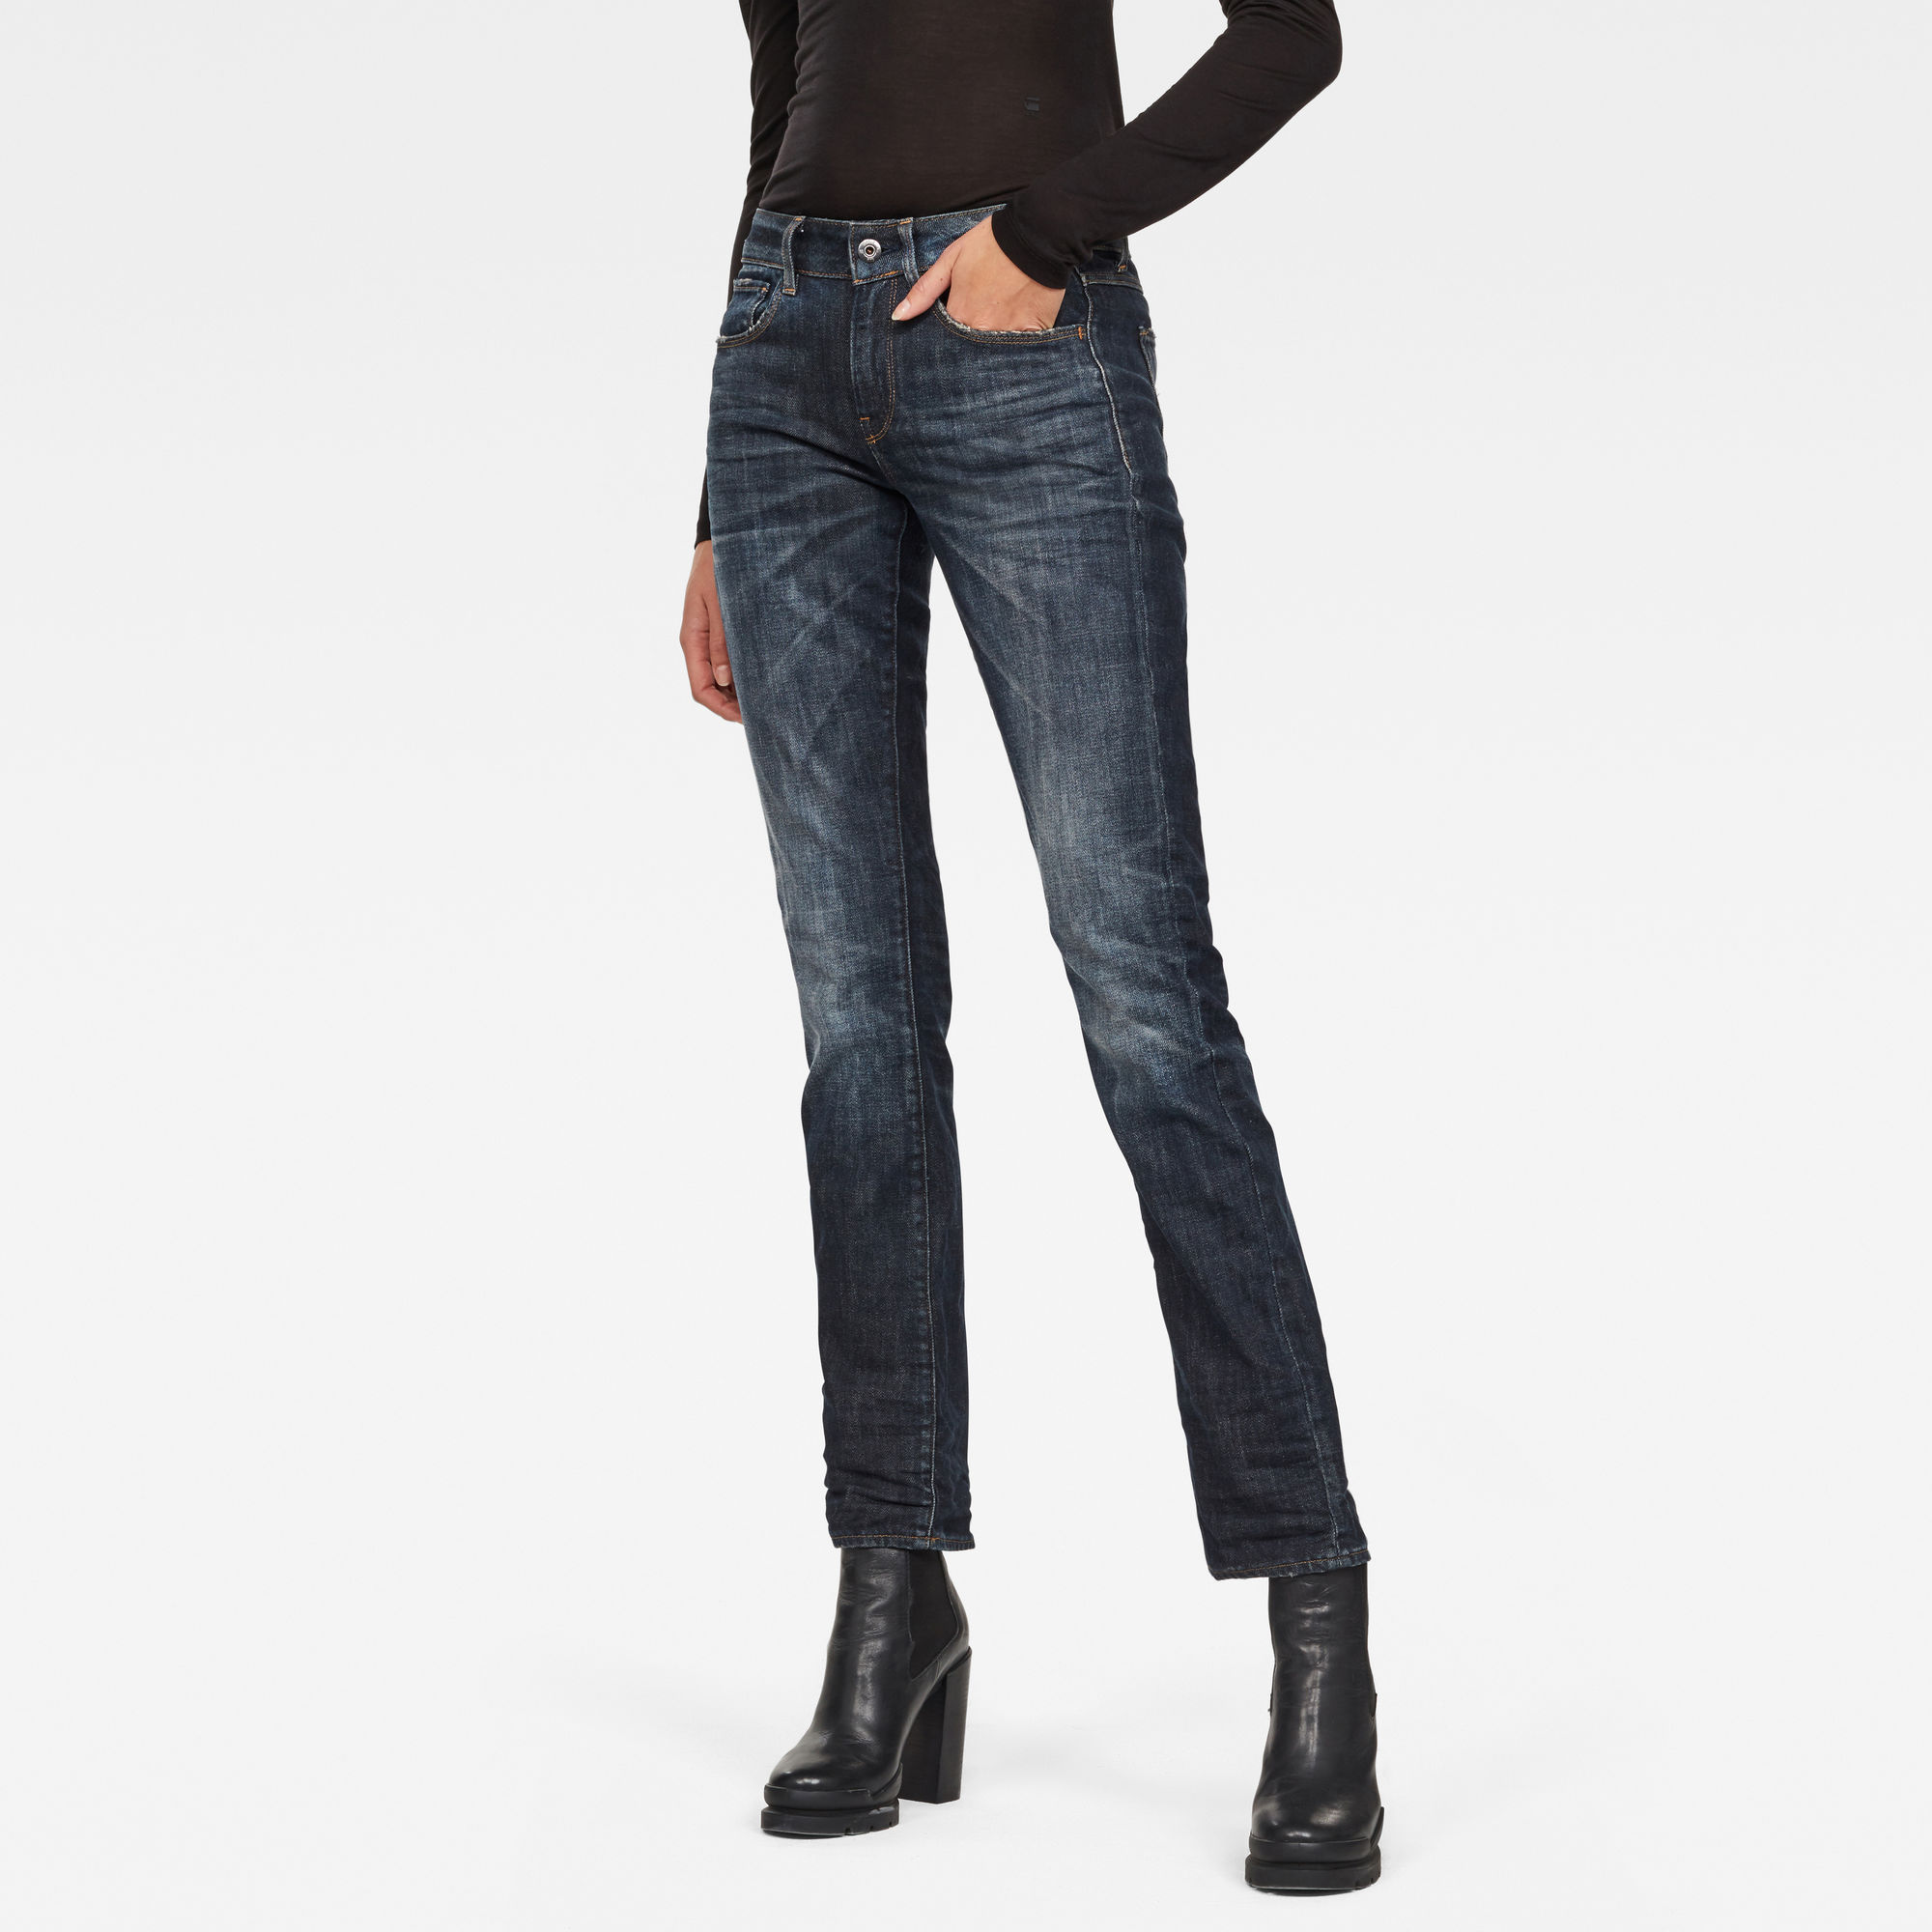 Image of G Star Raw 3301 Deconstructed Mid Waist Straight Jeans